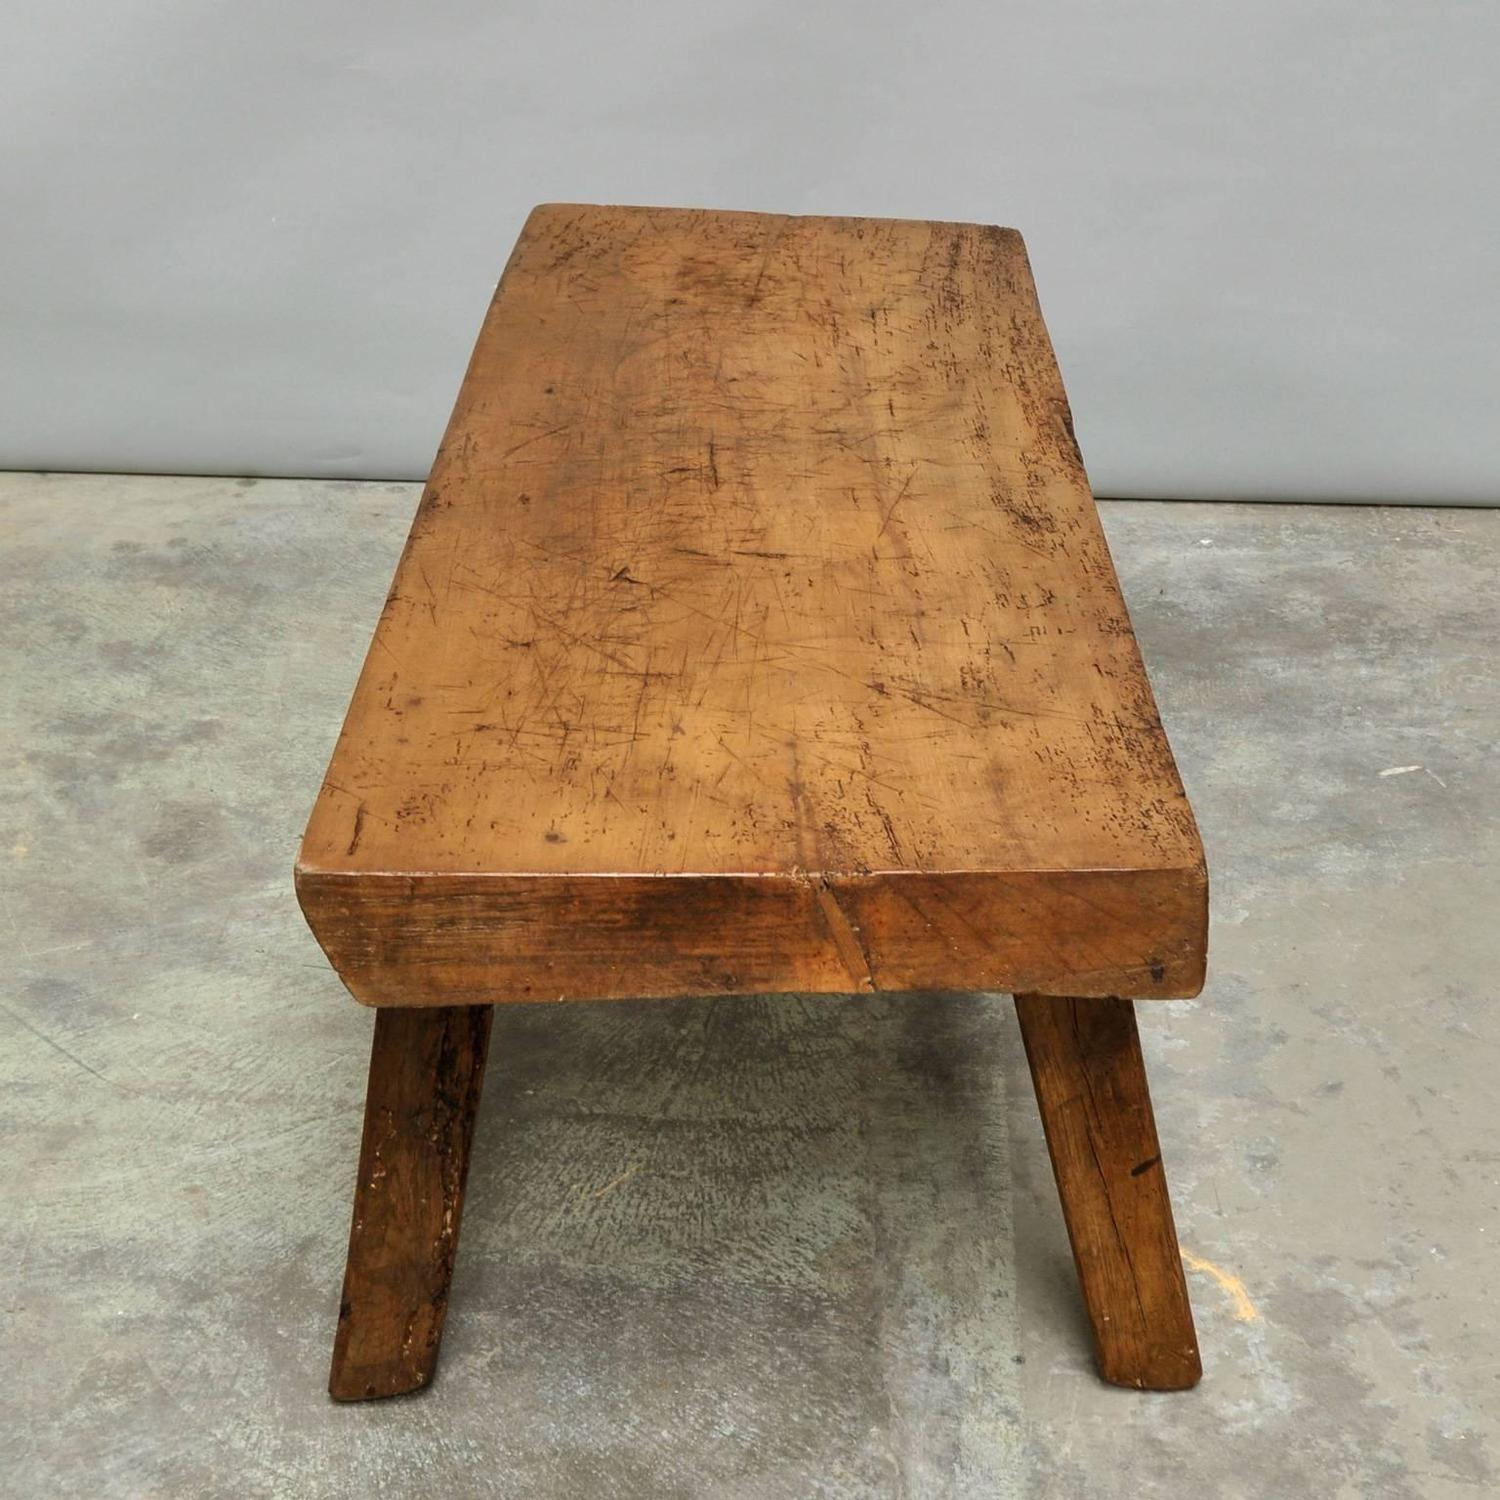 Antique Butcher Block Coffee Table For Sale At 1stdibs. Full resolution‎  photo, nominally Width 1500 Height 1500 pixels, photo with #6F4422.